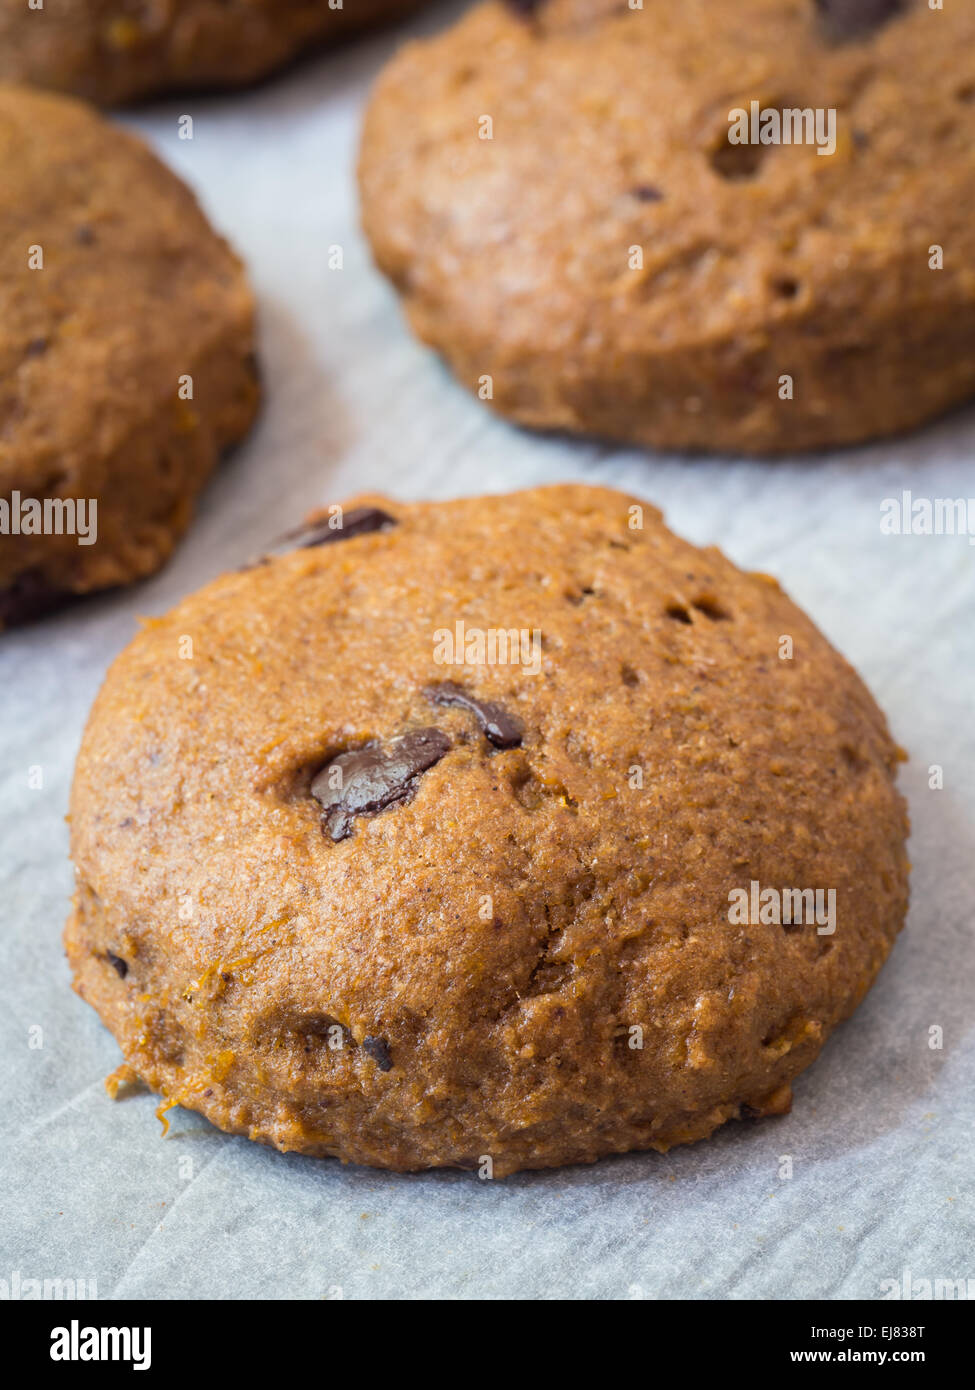 Vertical photo of whole grain vegan soft spelt pumpkin cookies with chocolate chips on a piece of baking paper. - Stock Image